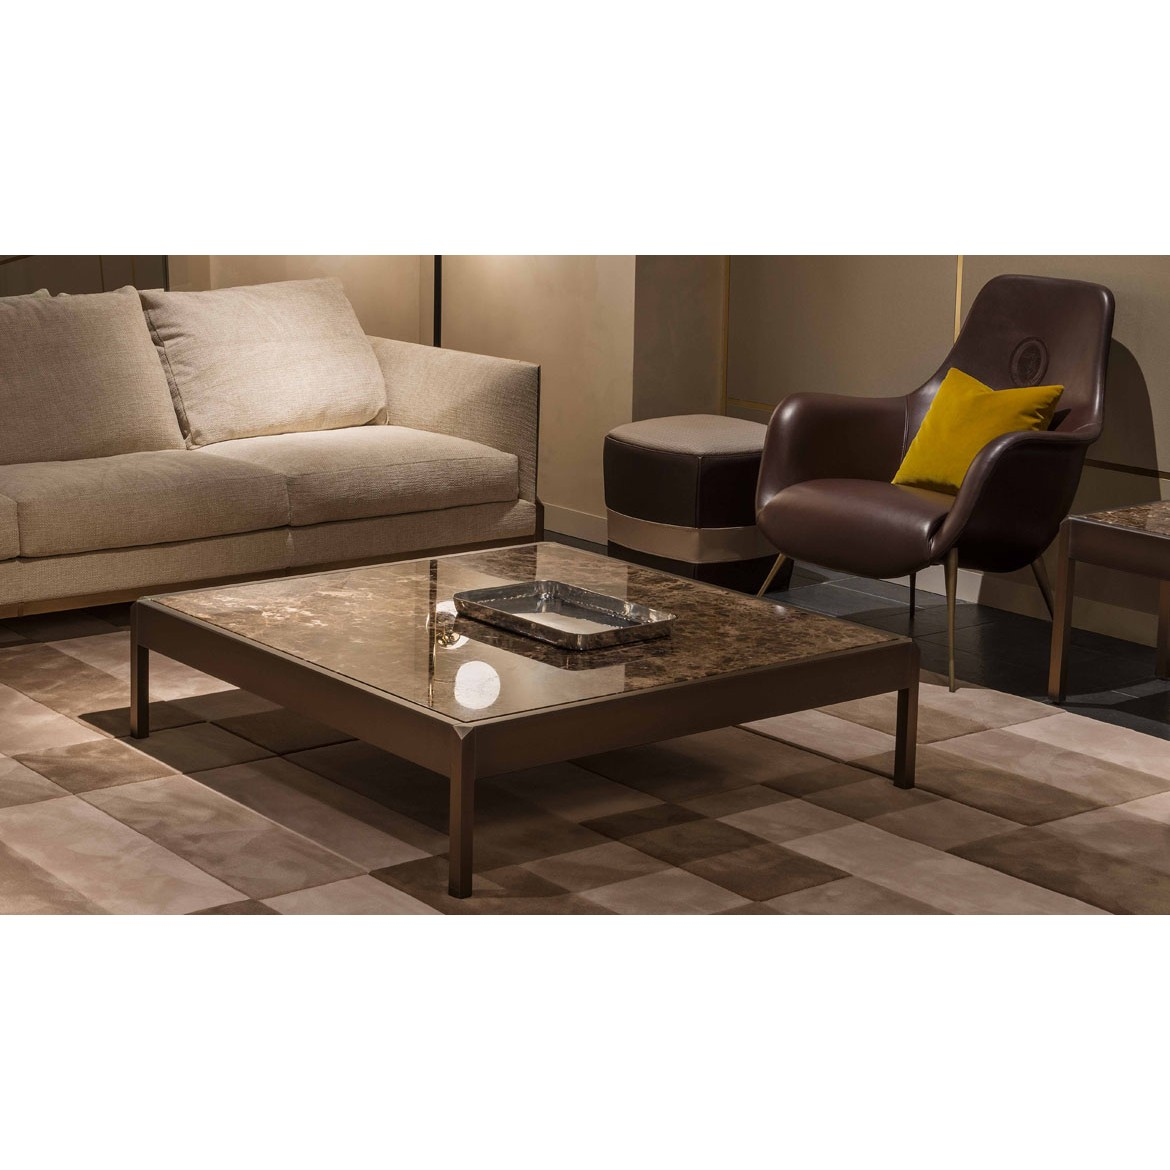 Стол журнальный Band Coffee and Side Tables 2, дизайн Trussardi Casa